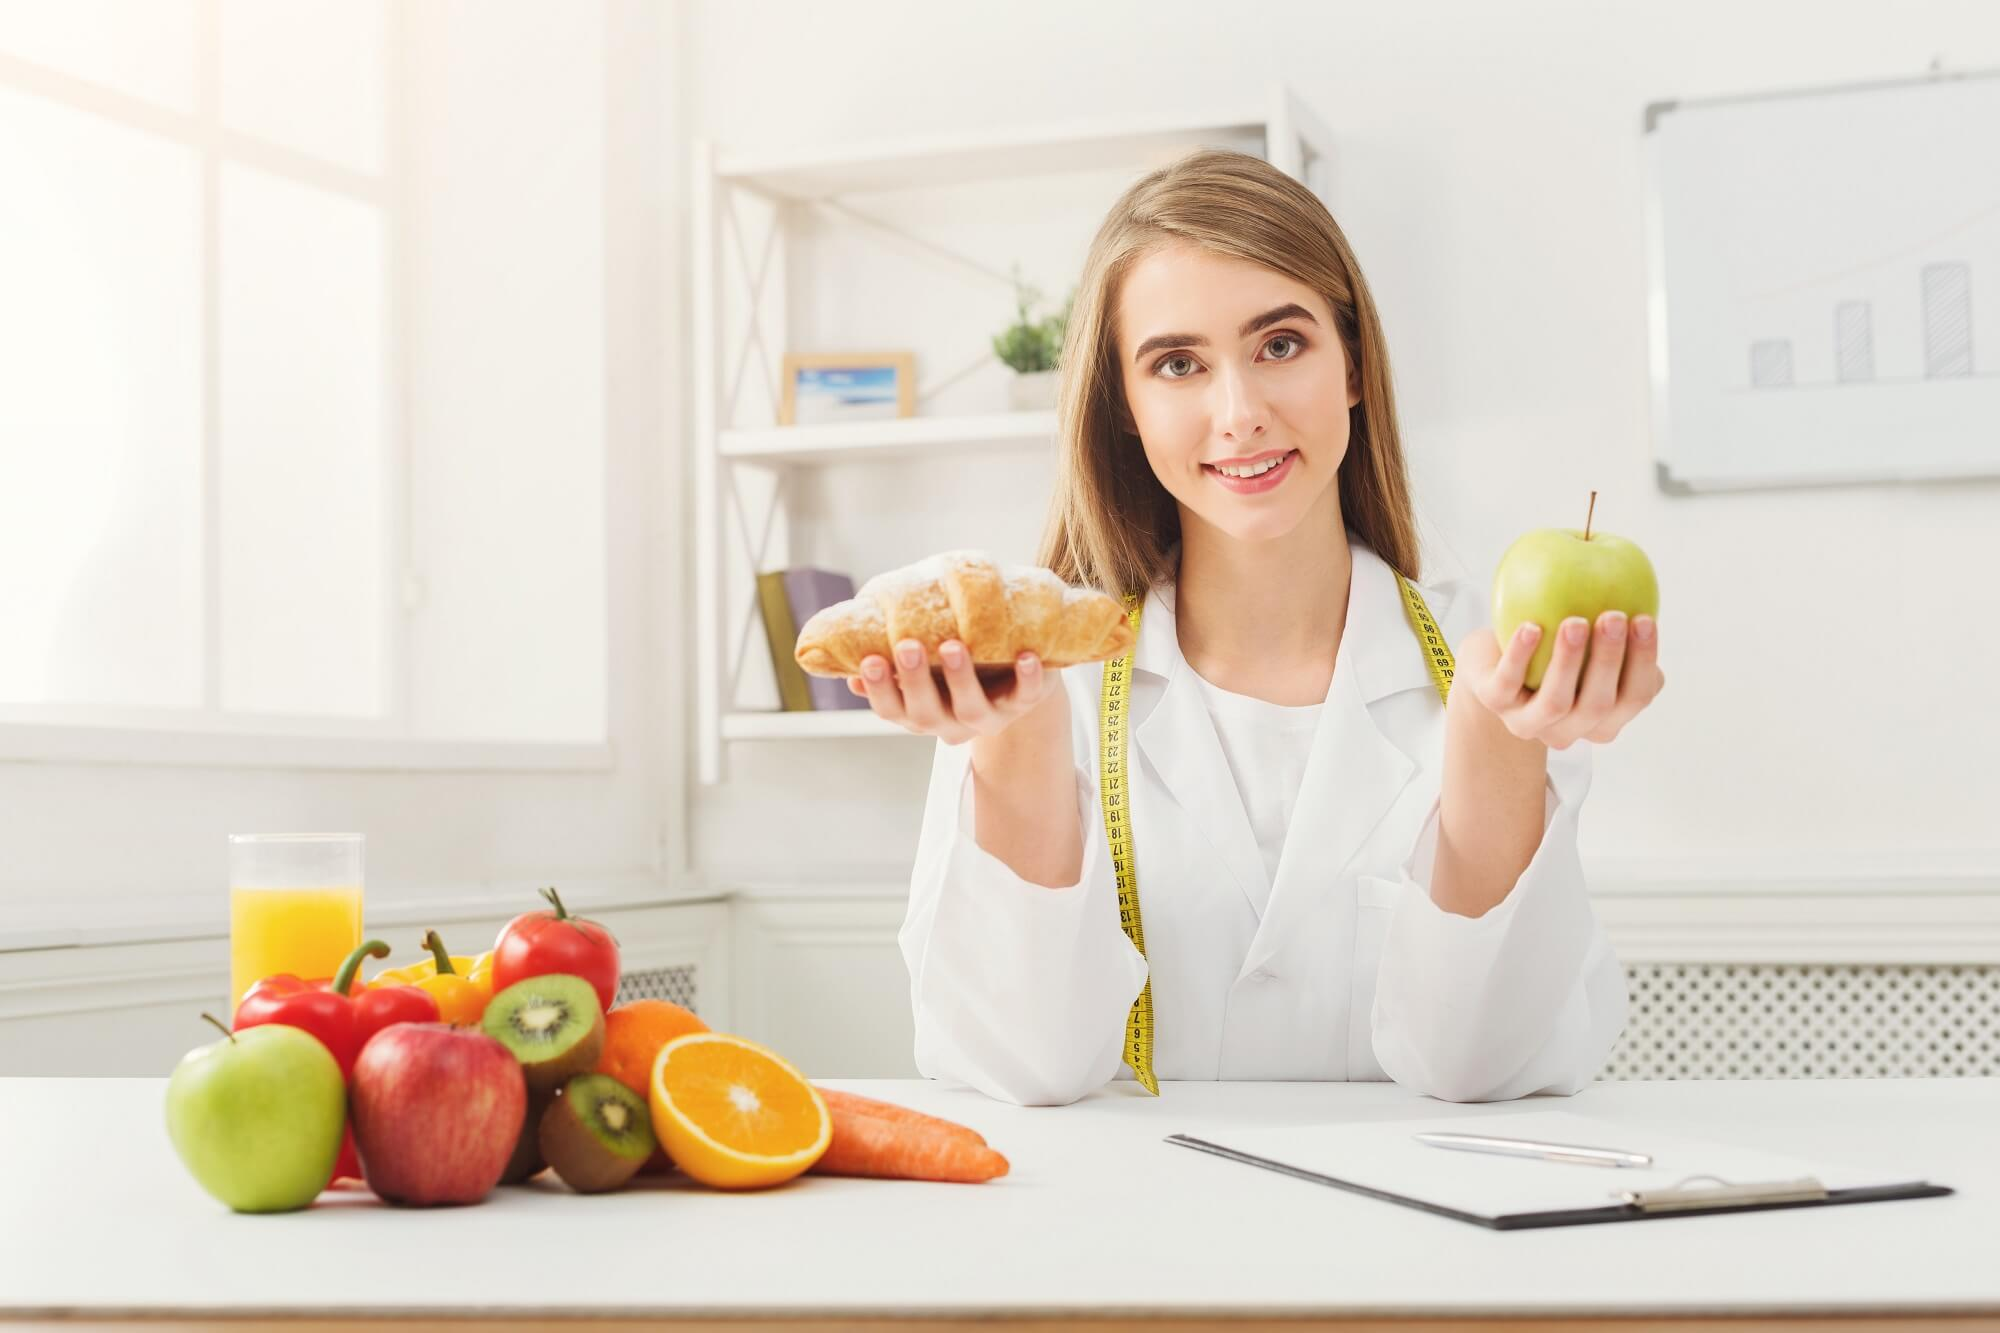 sports dietician comparing nutrition values of fruits and pastries